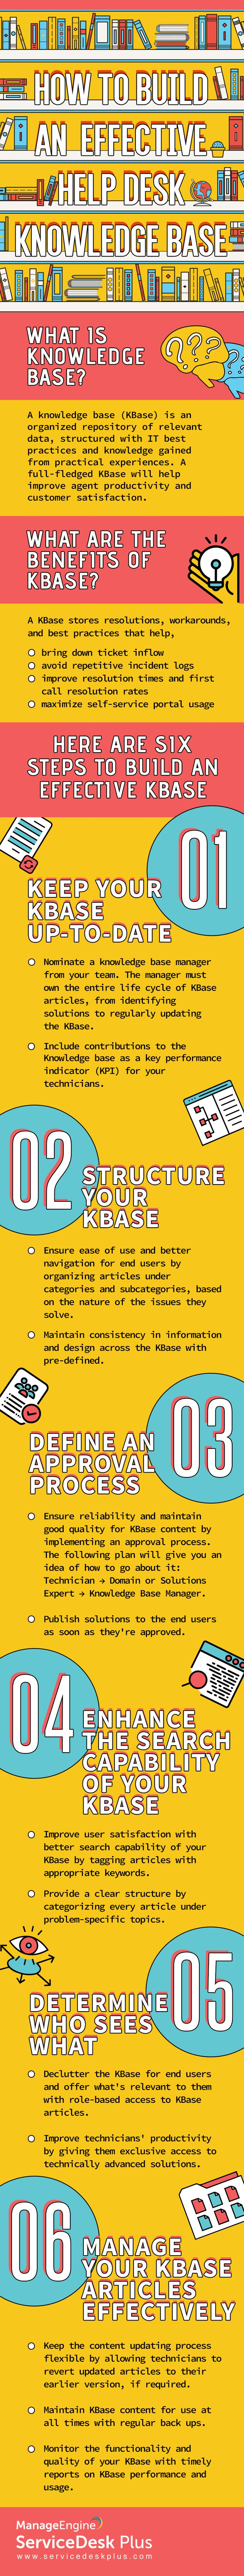 How to Build an Effective Help Desk Knowledge Base Infographic - http://elearninginfographics.com/build-effective-help-desk-knowledge-base-infographic/